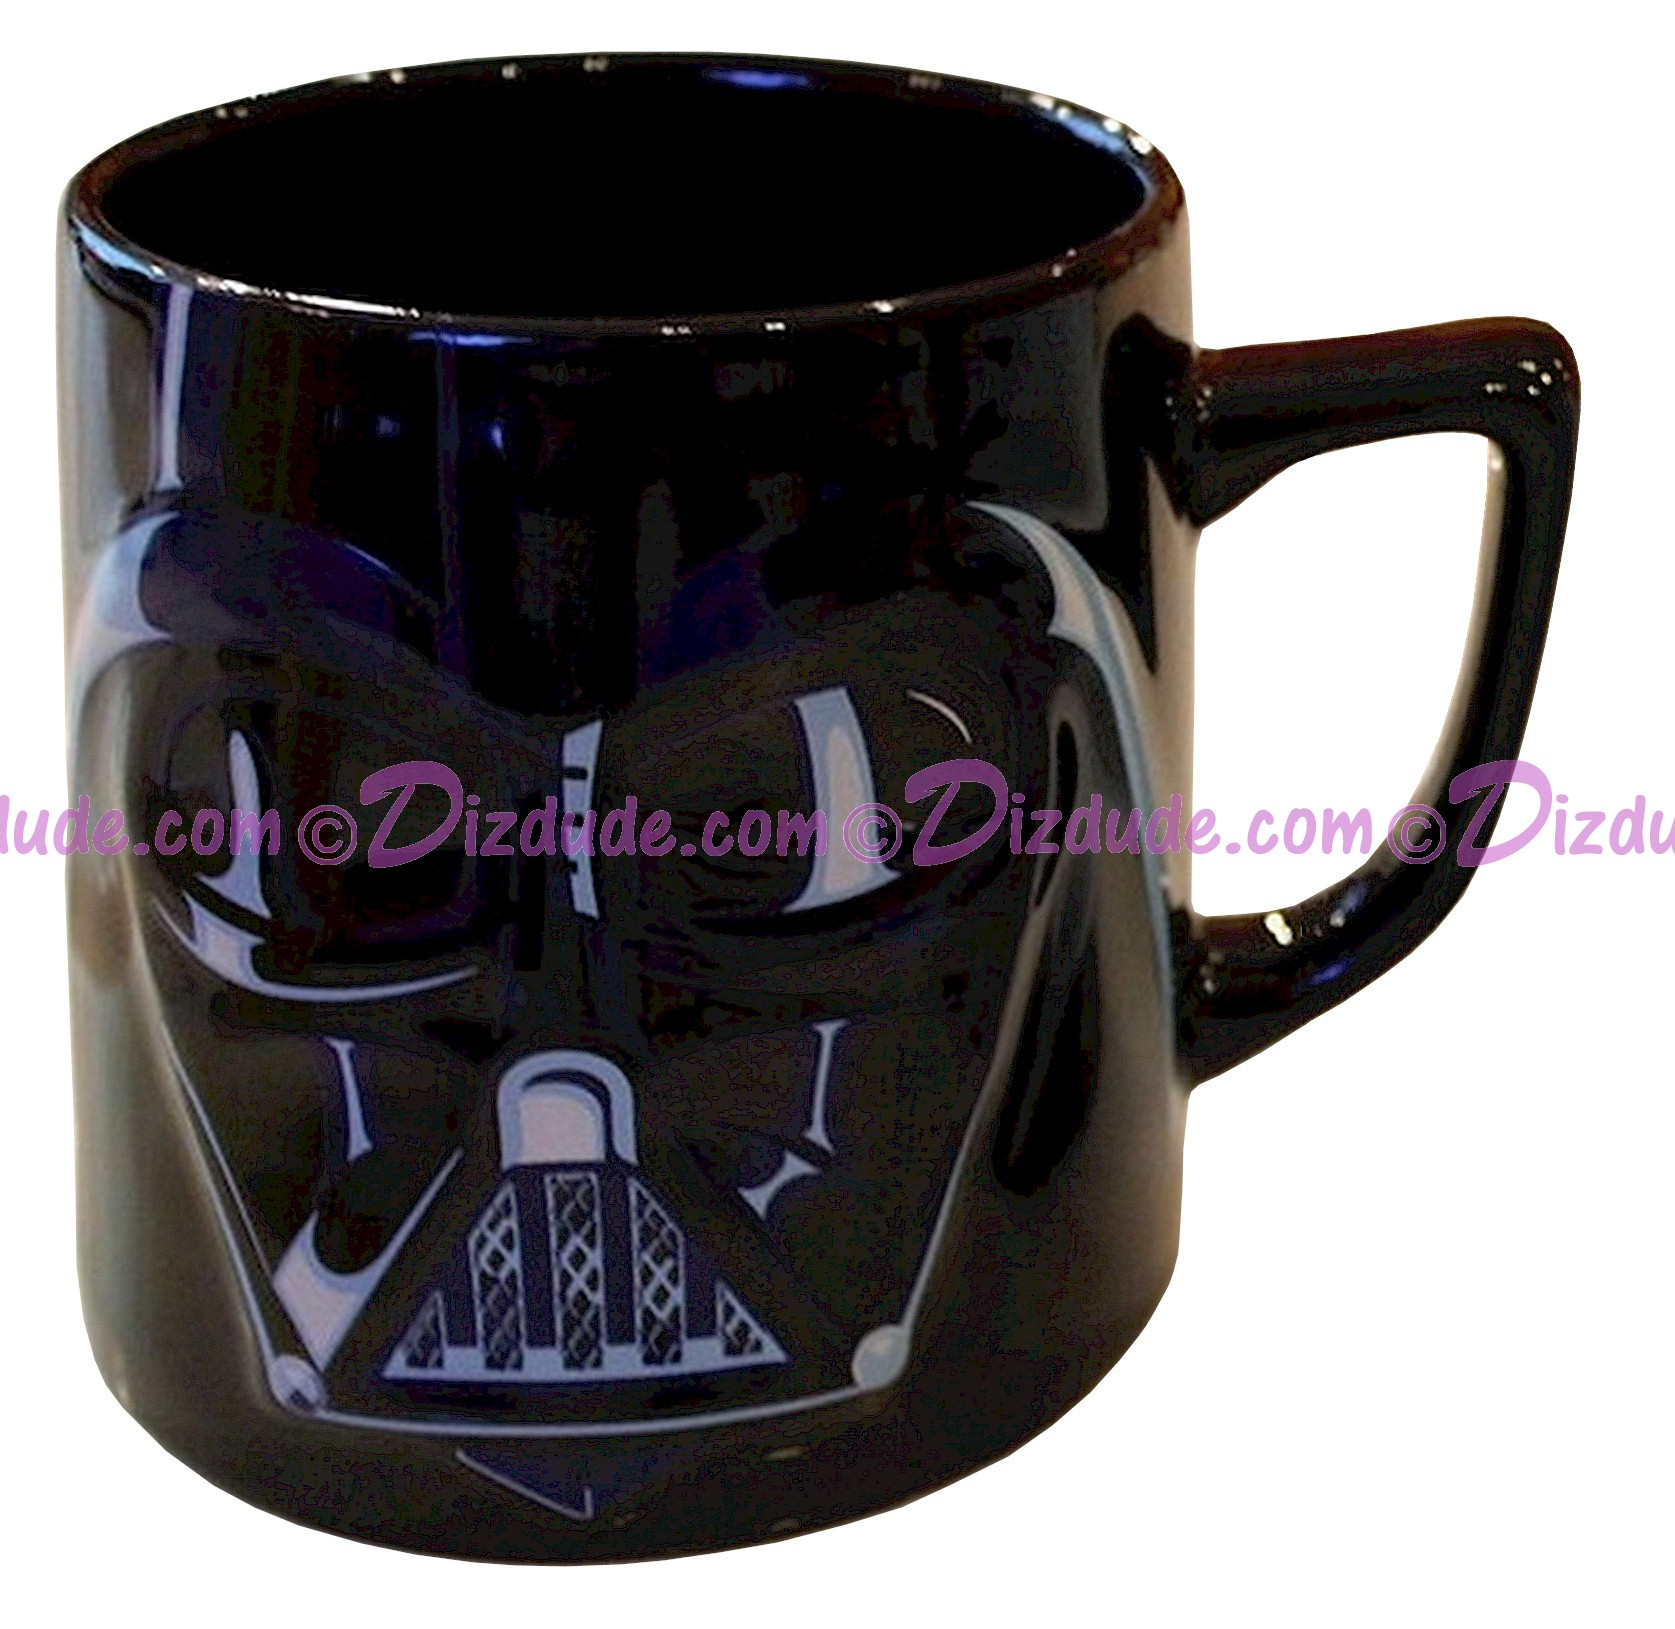 Darth Vader Disney Star Wars Character Mug © Dizdude.com